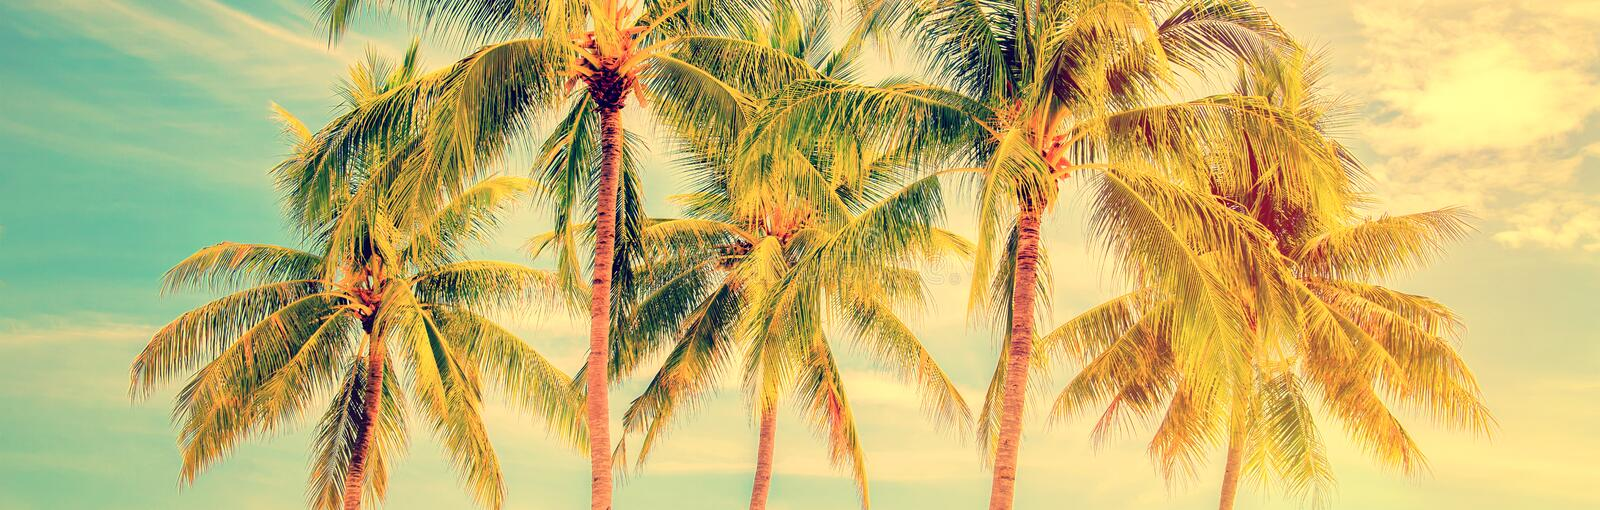 Group of palm trees, vintage style summer panorama, travel concept royalty free stock photos